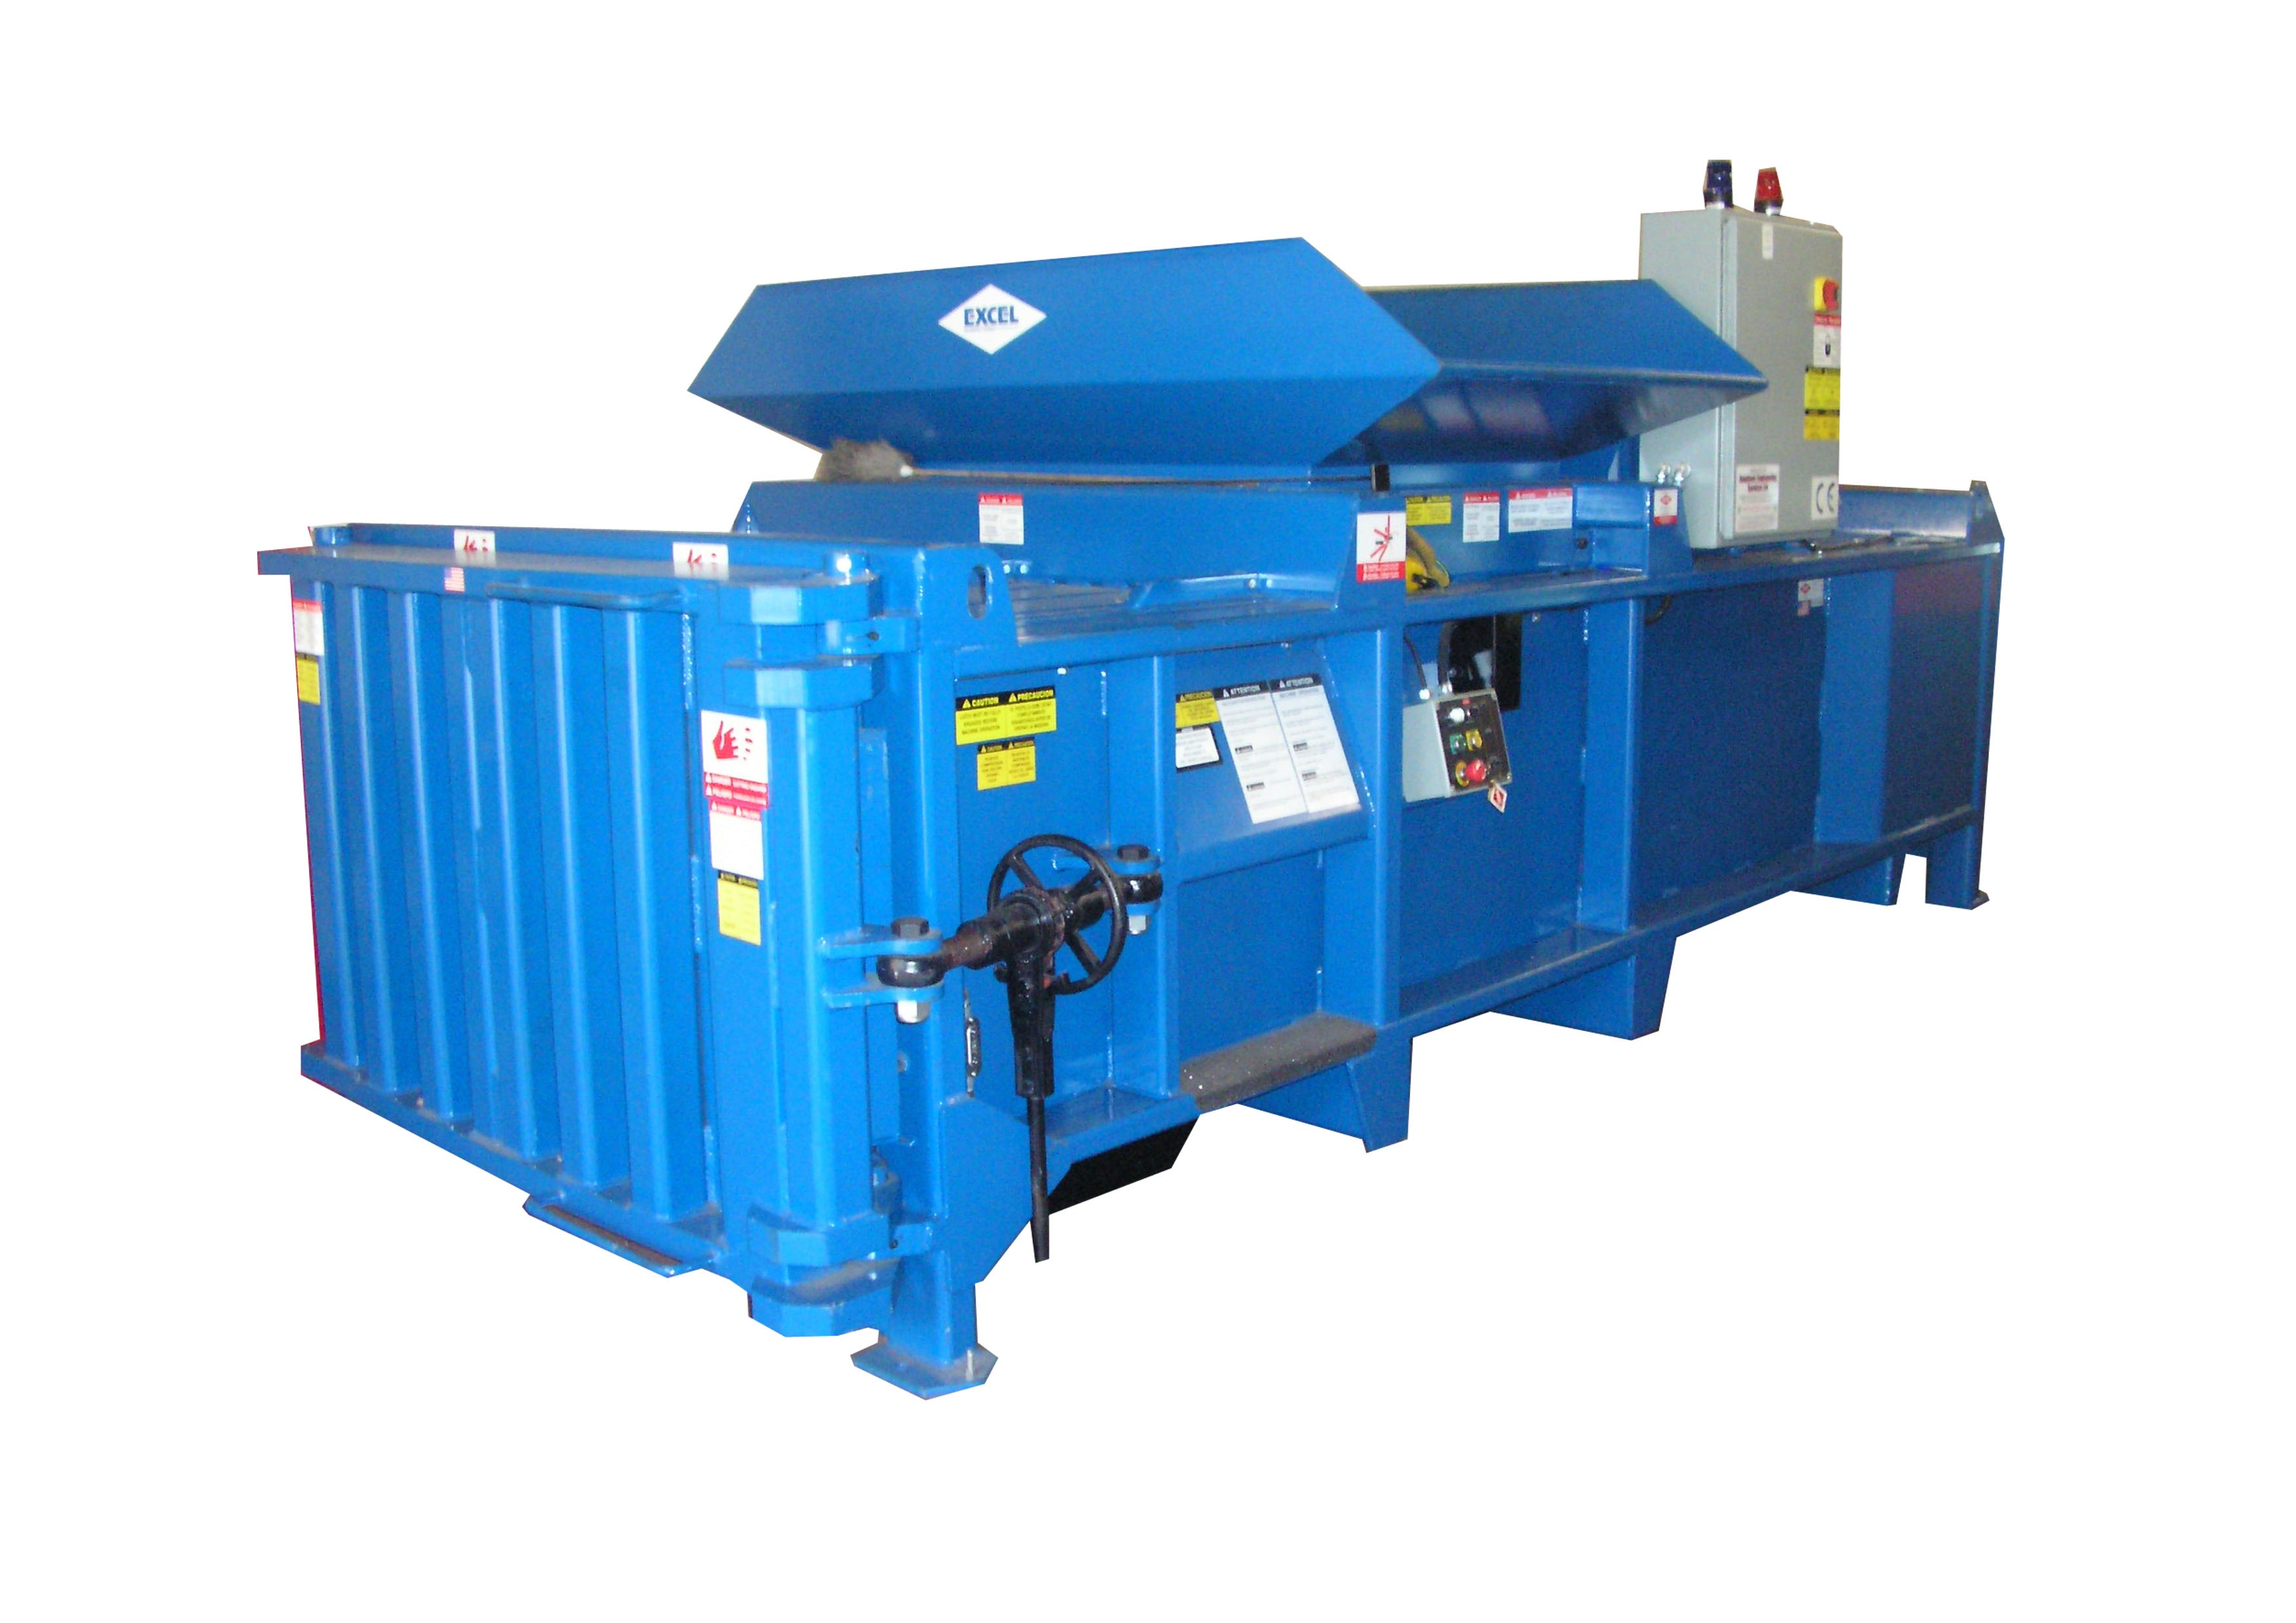 From the archives: Produce importer comments on Riverside baler